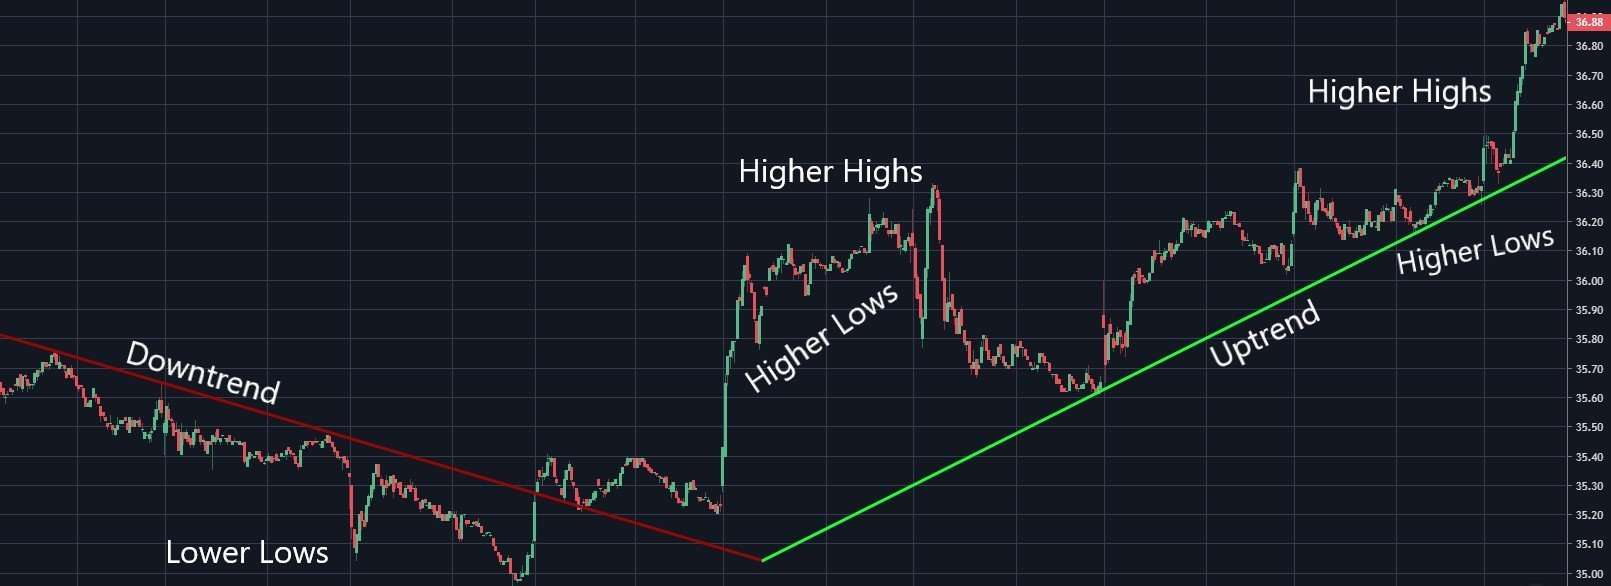 reversal trading strategy example